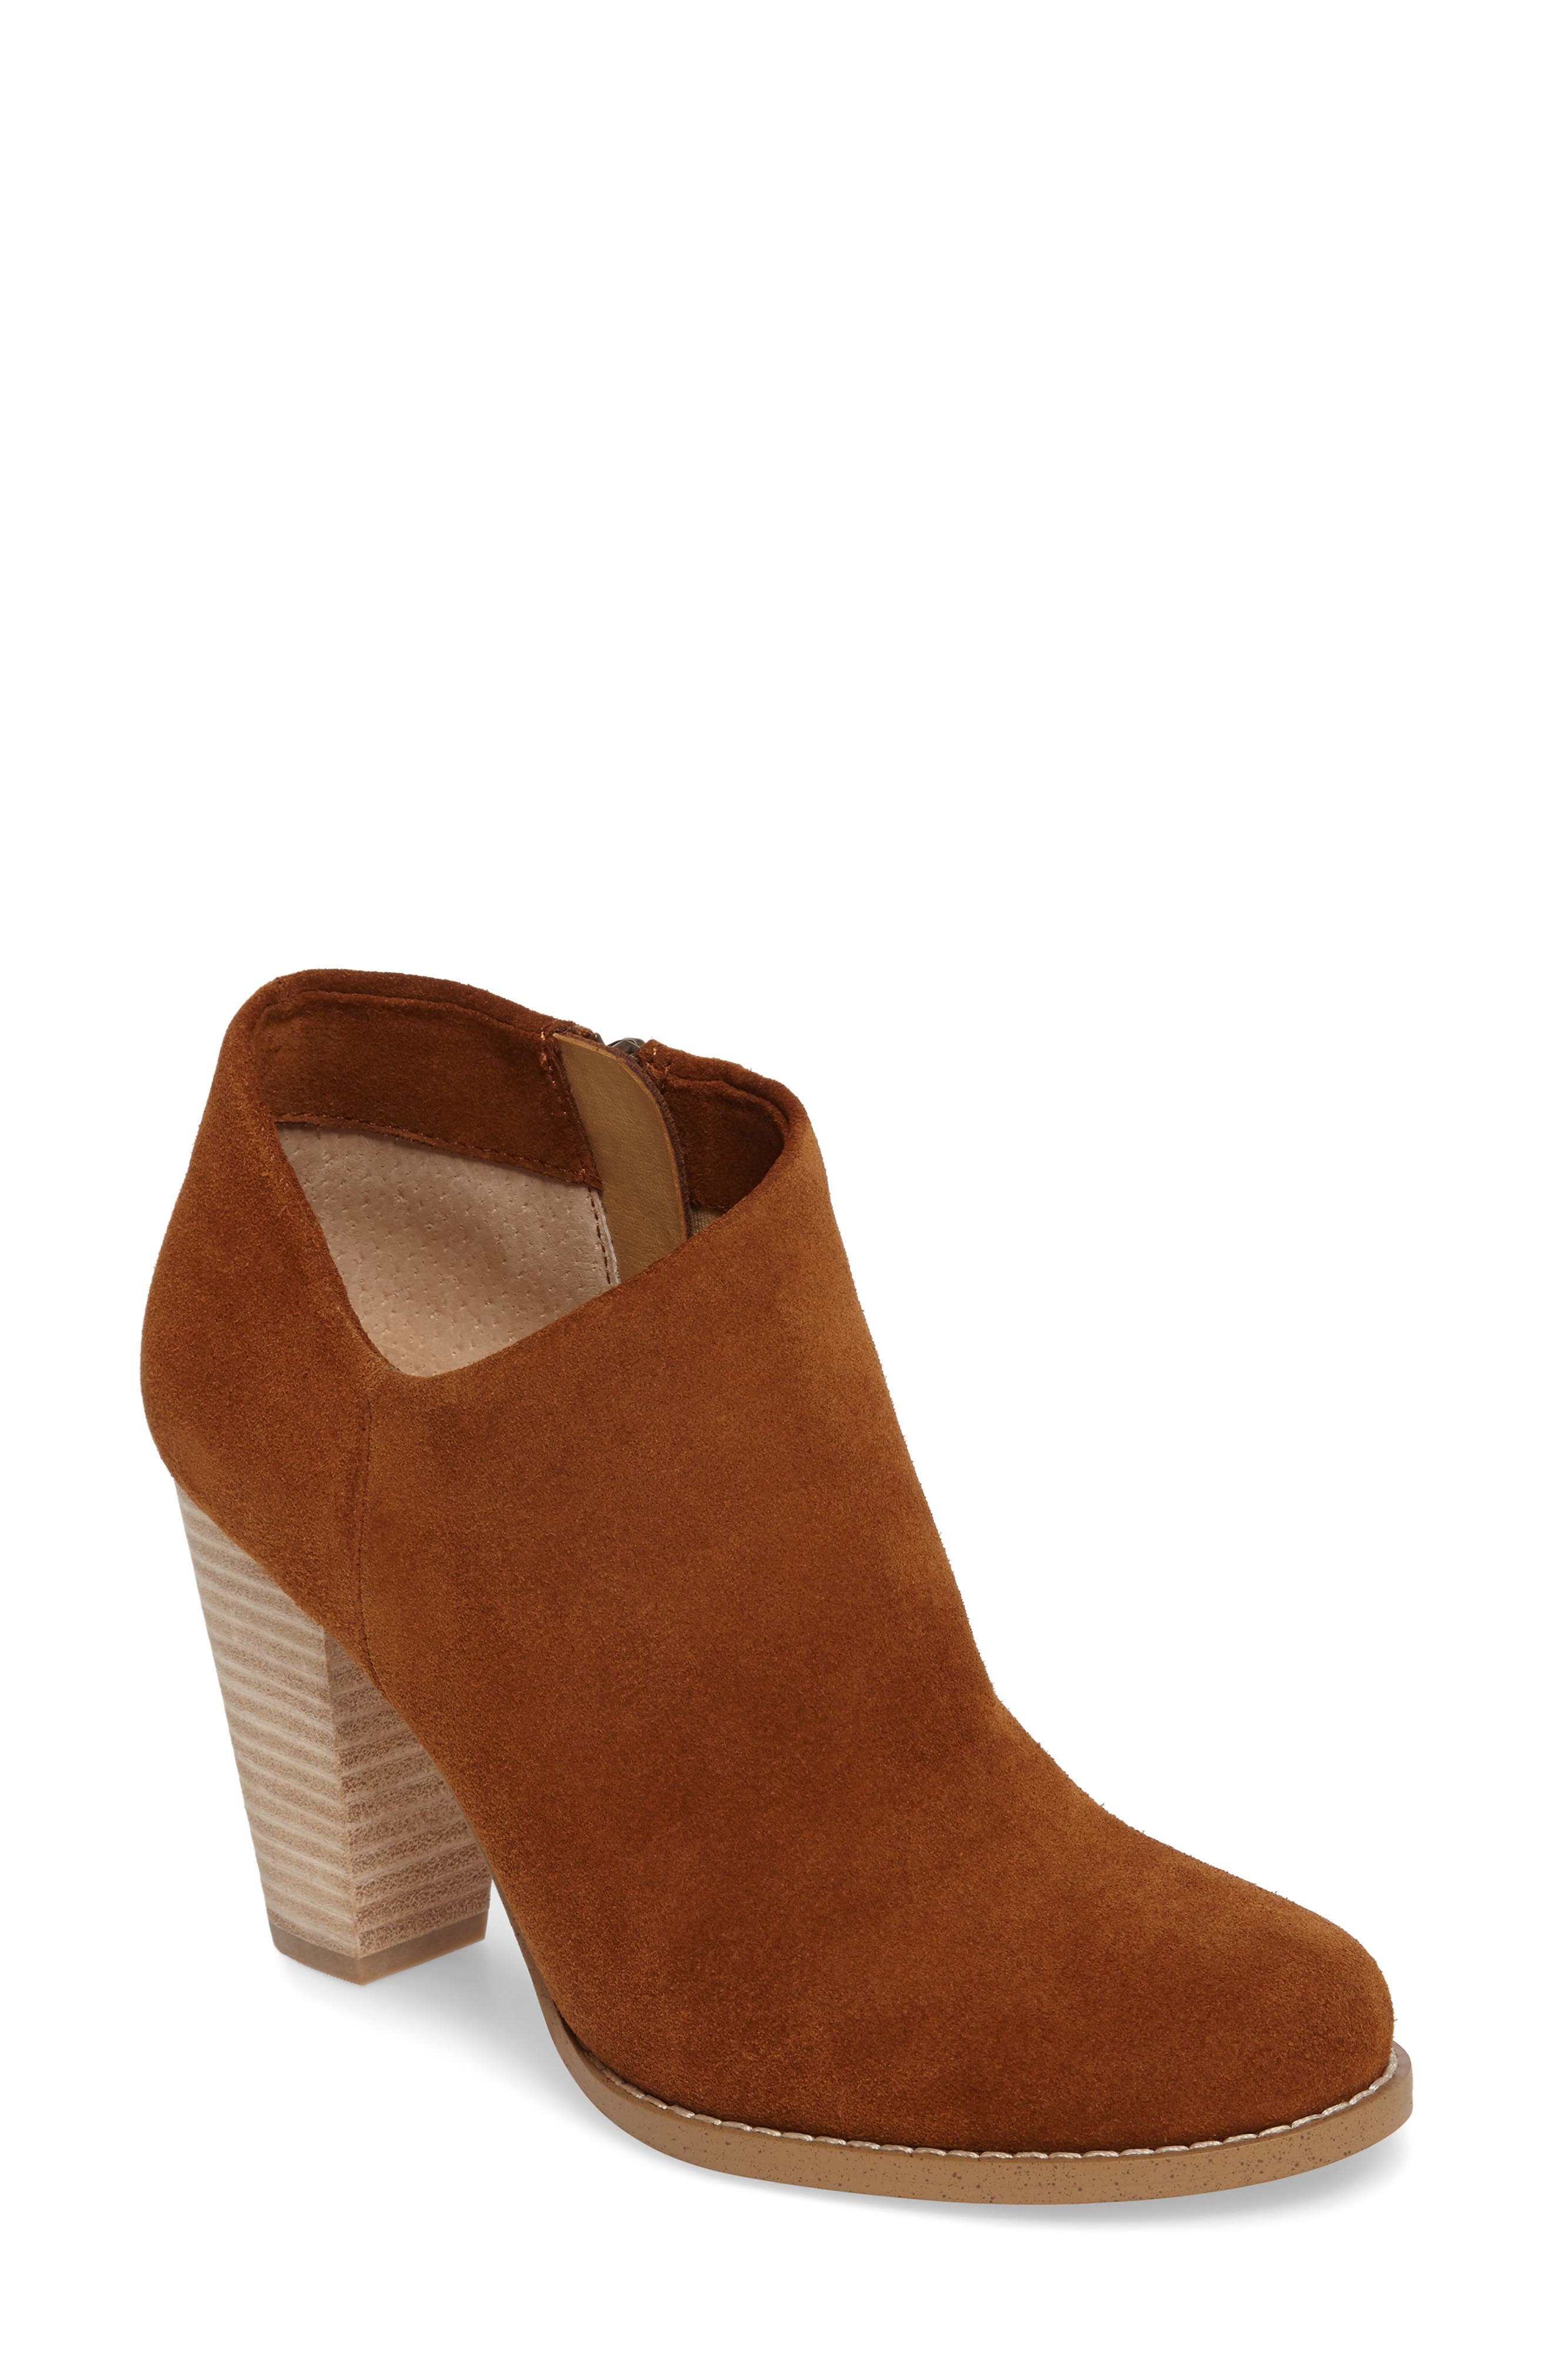 Daphne Bootie,                             Main thumbnail 1, color,                             Whiskey Suede